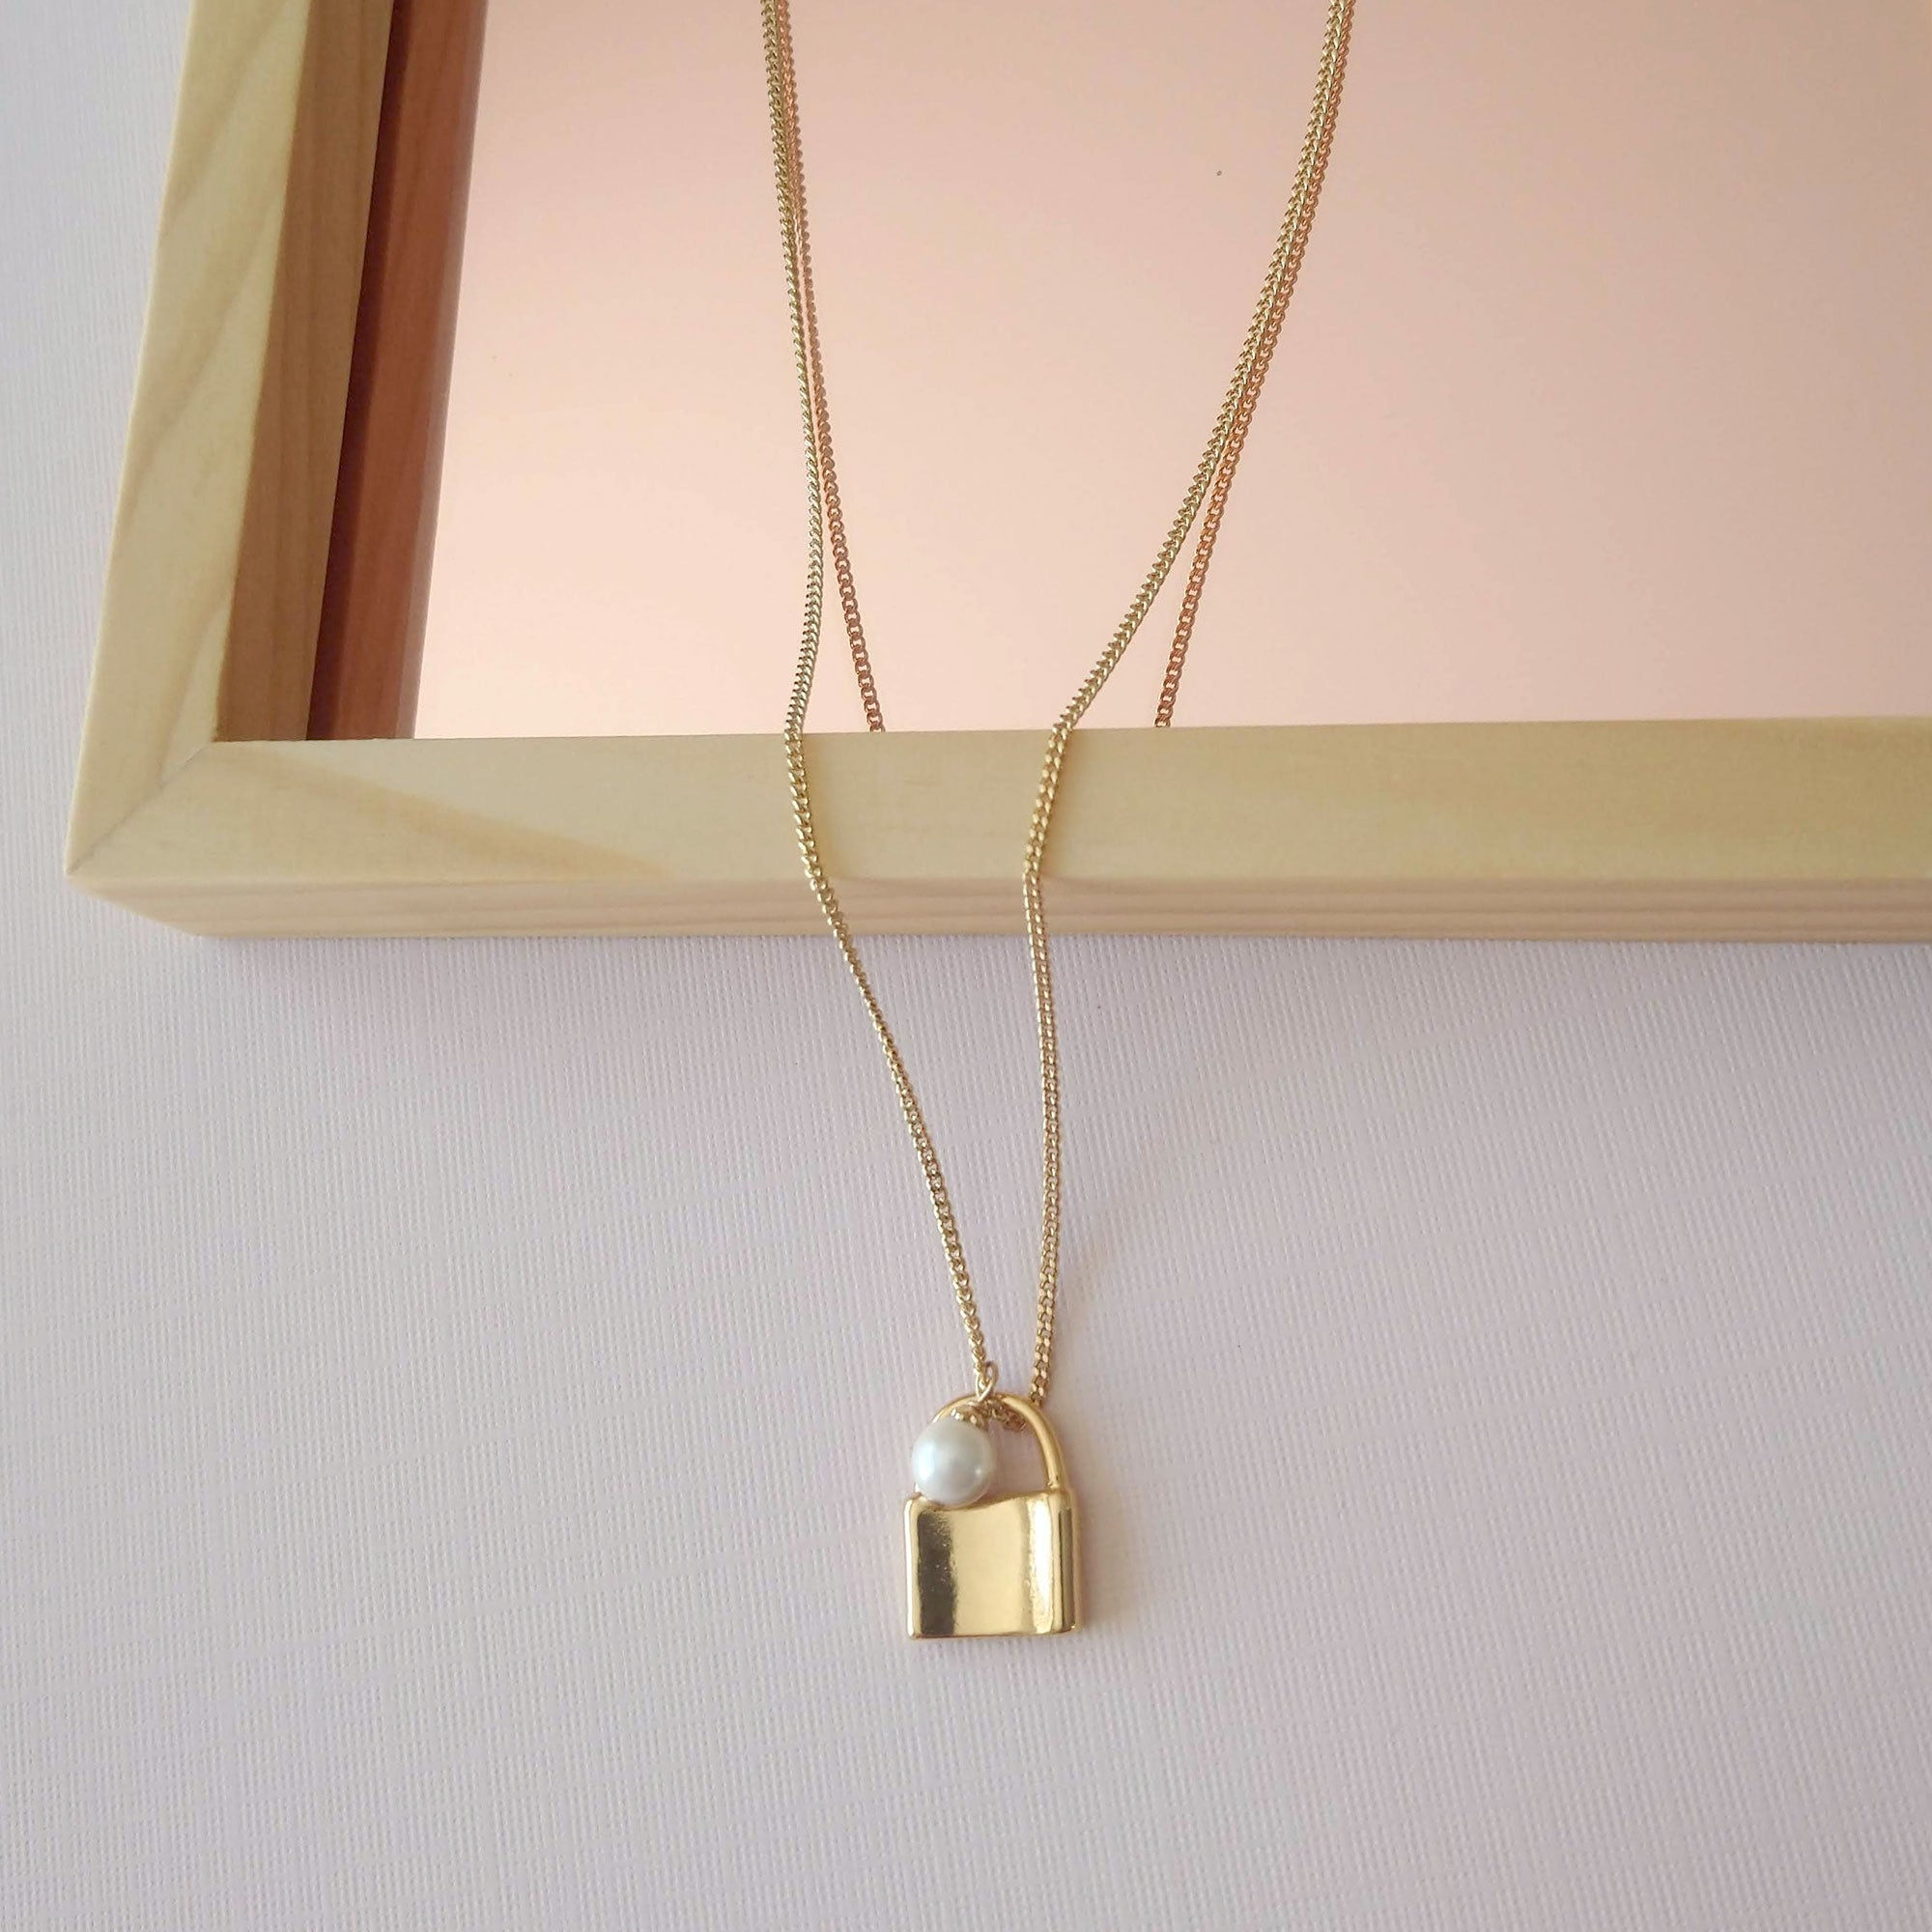 gold padlock necklace with pearl